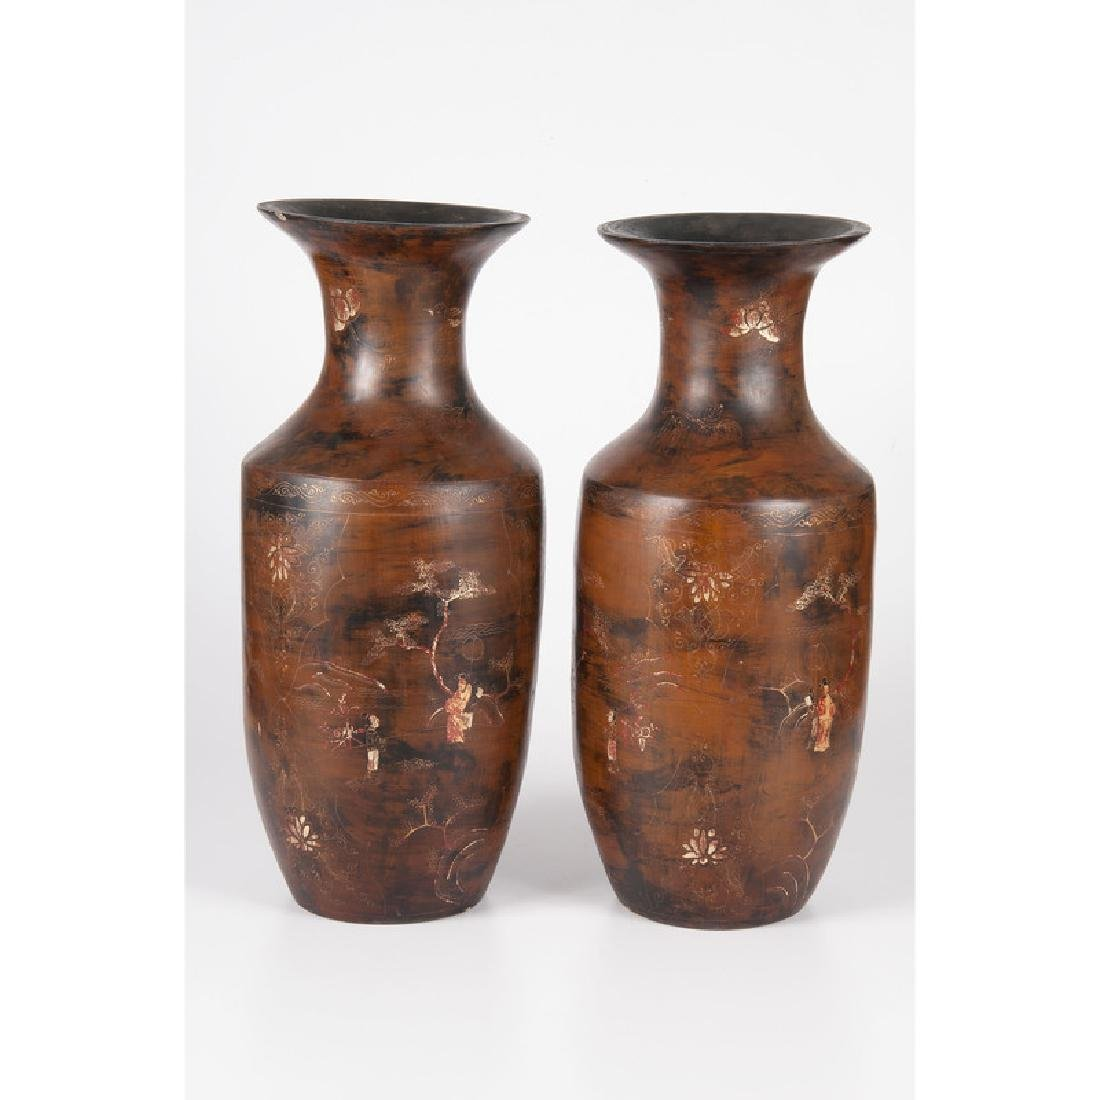 Japanese Lacquer Vases